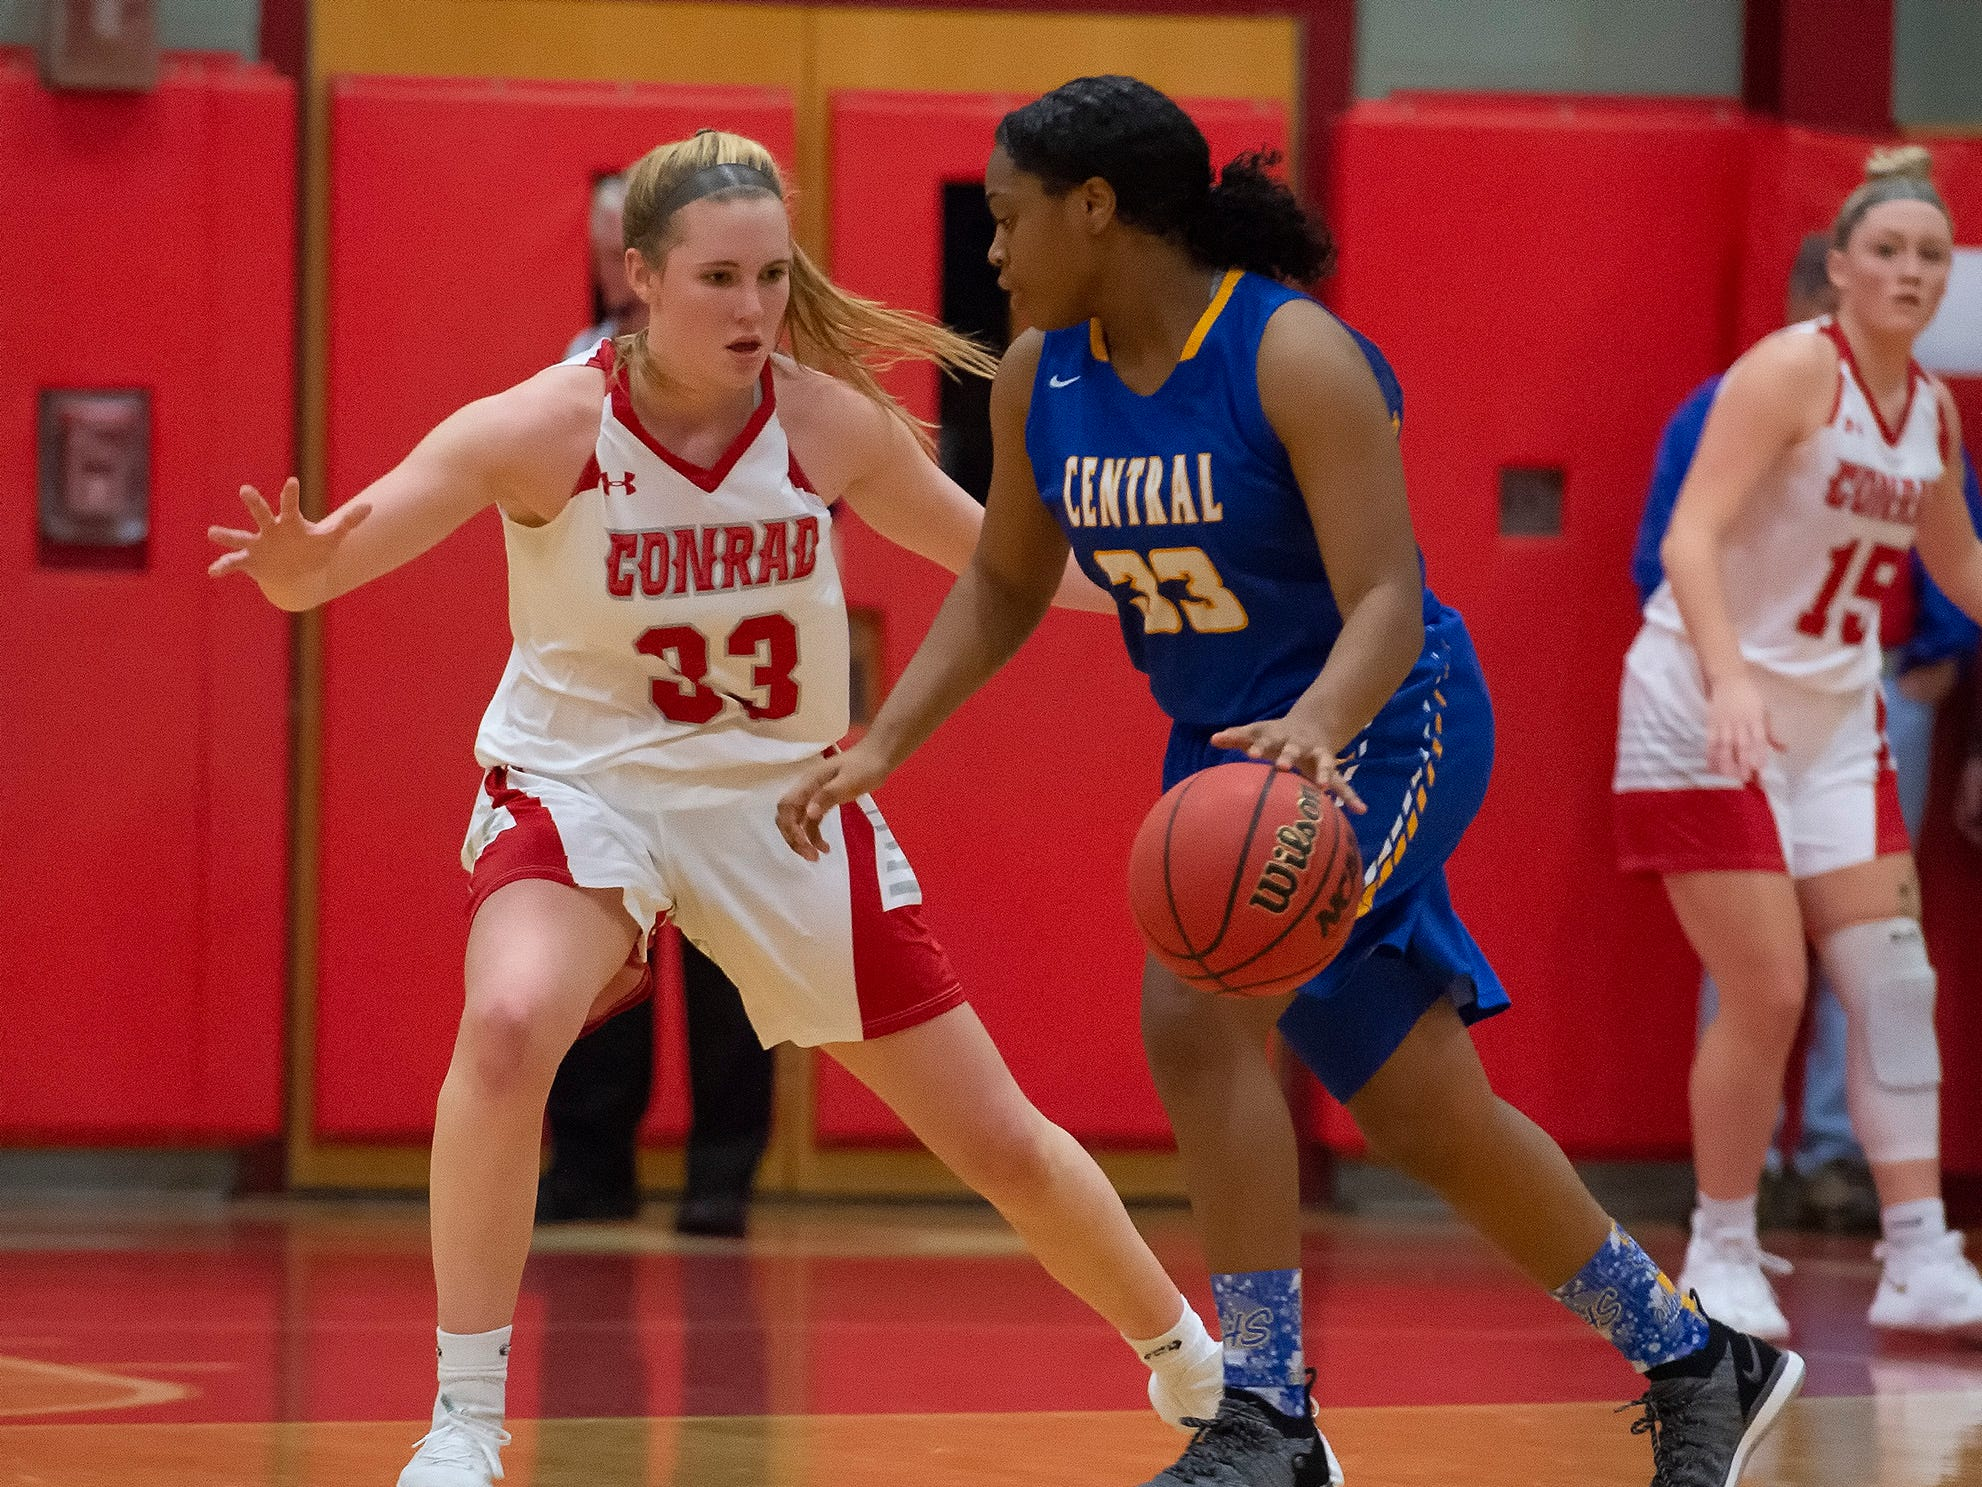 Conrad's Julie Kulesza (33) guards Sussex Central's Ambria Stratton (33) in their game at Conrad Schools of Science.